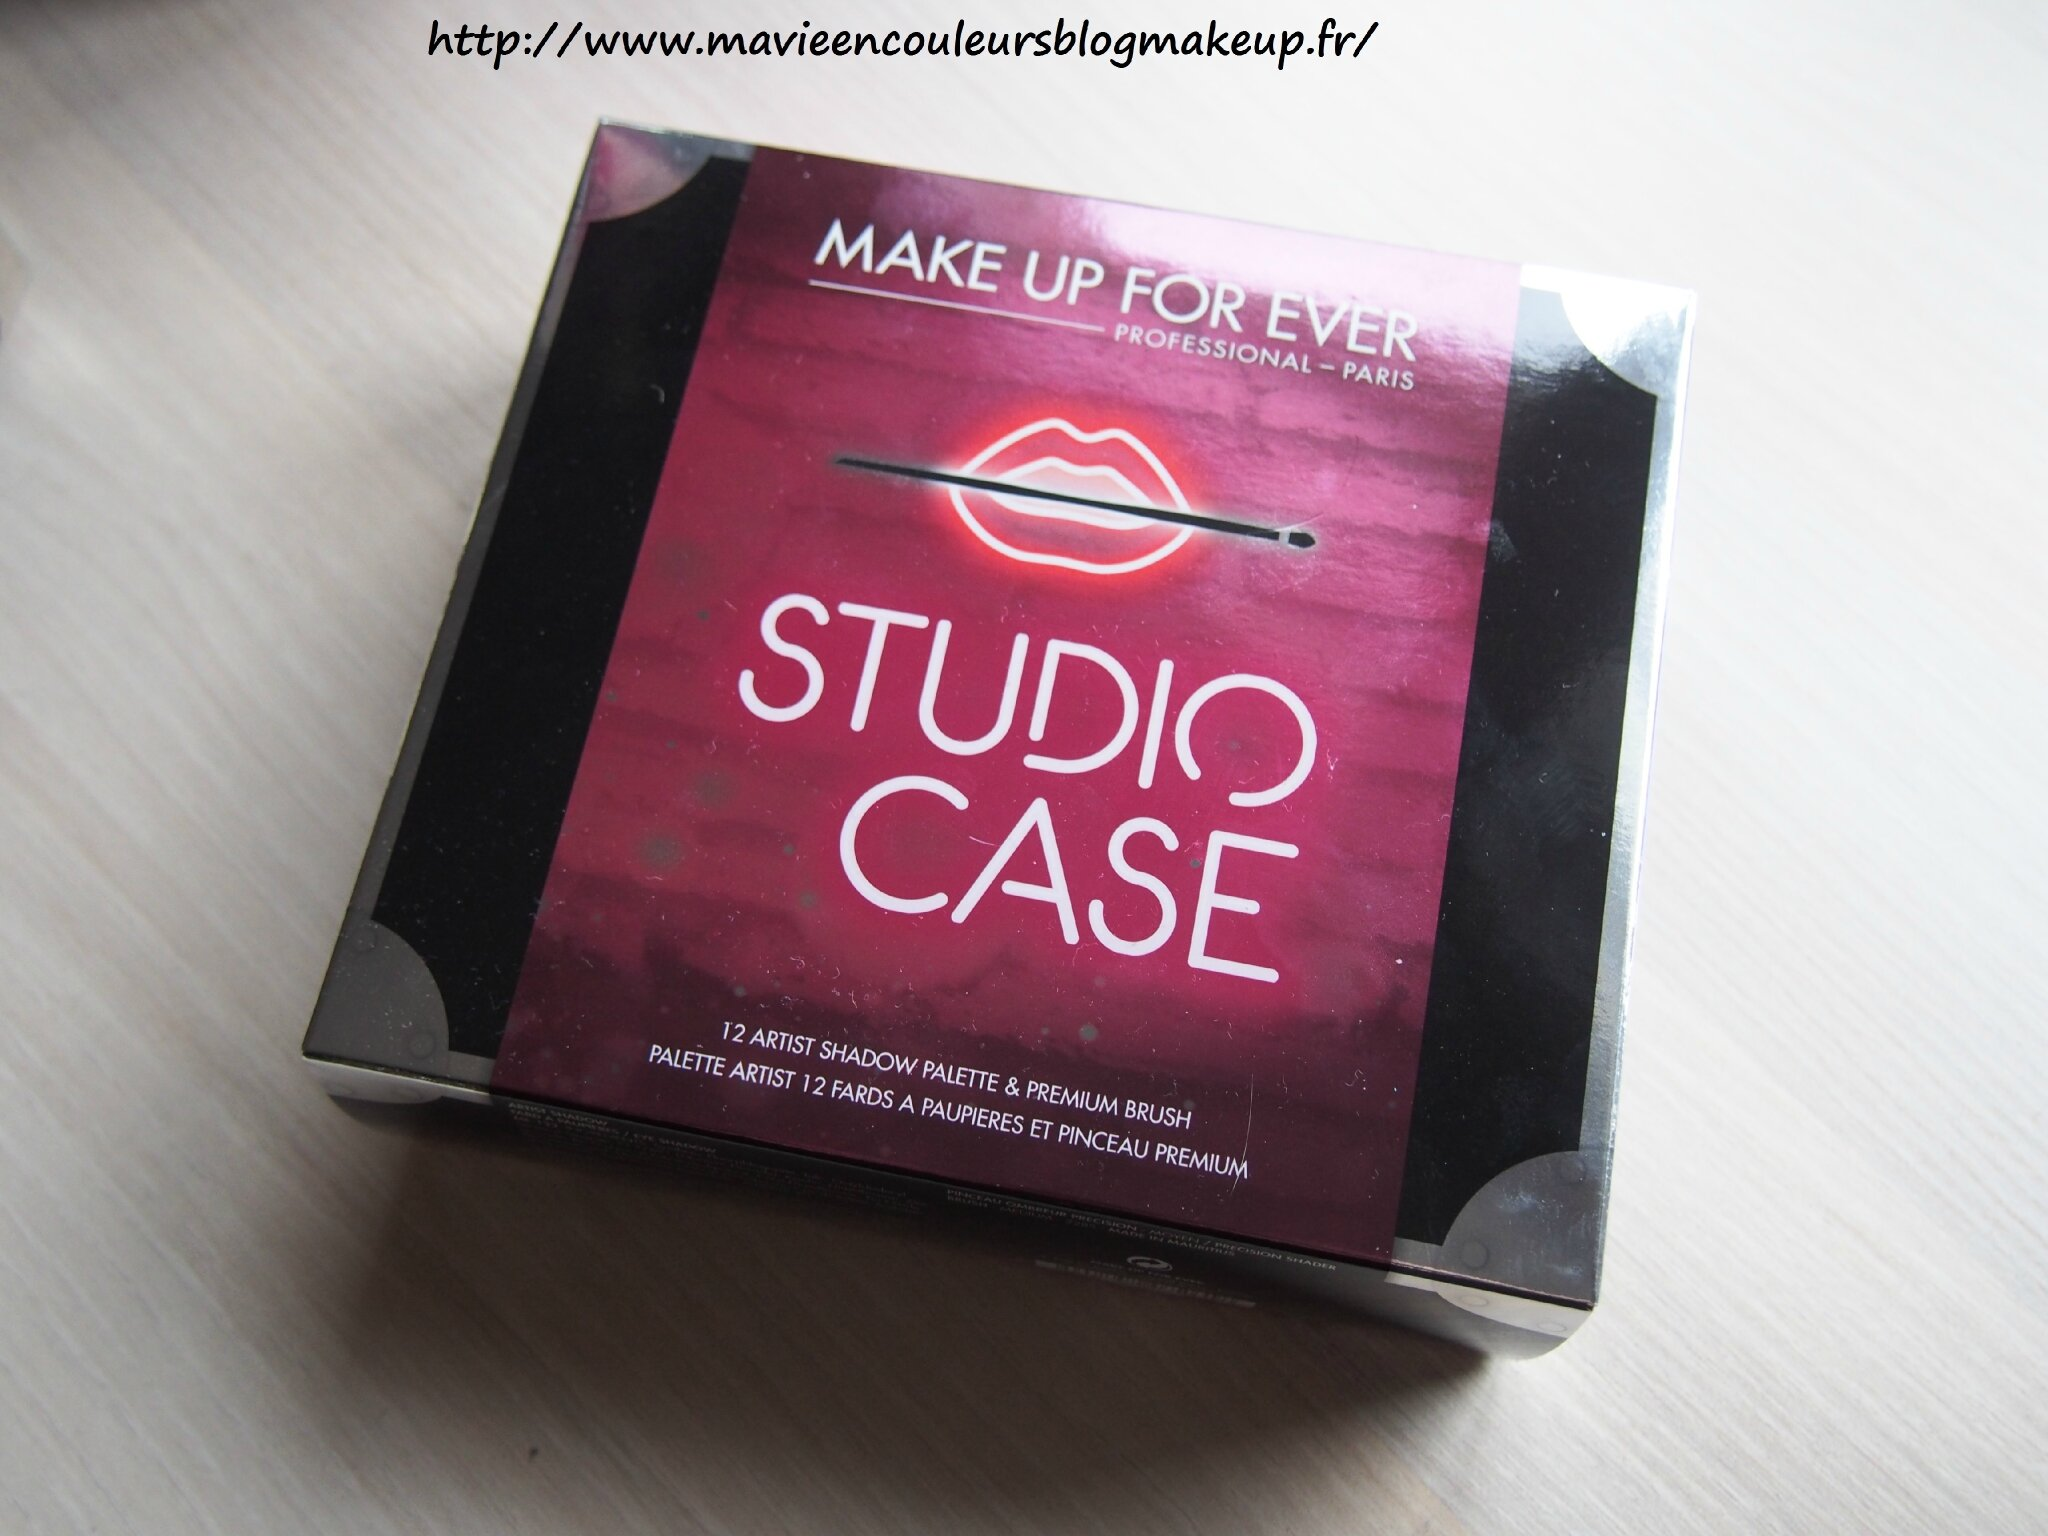 Studio case make up for ever,je suis conquise.